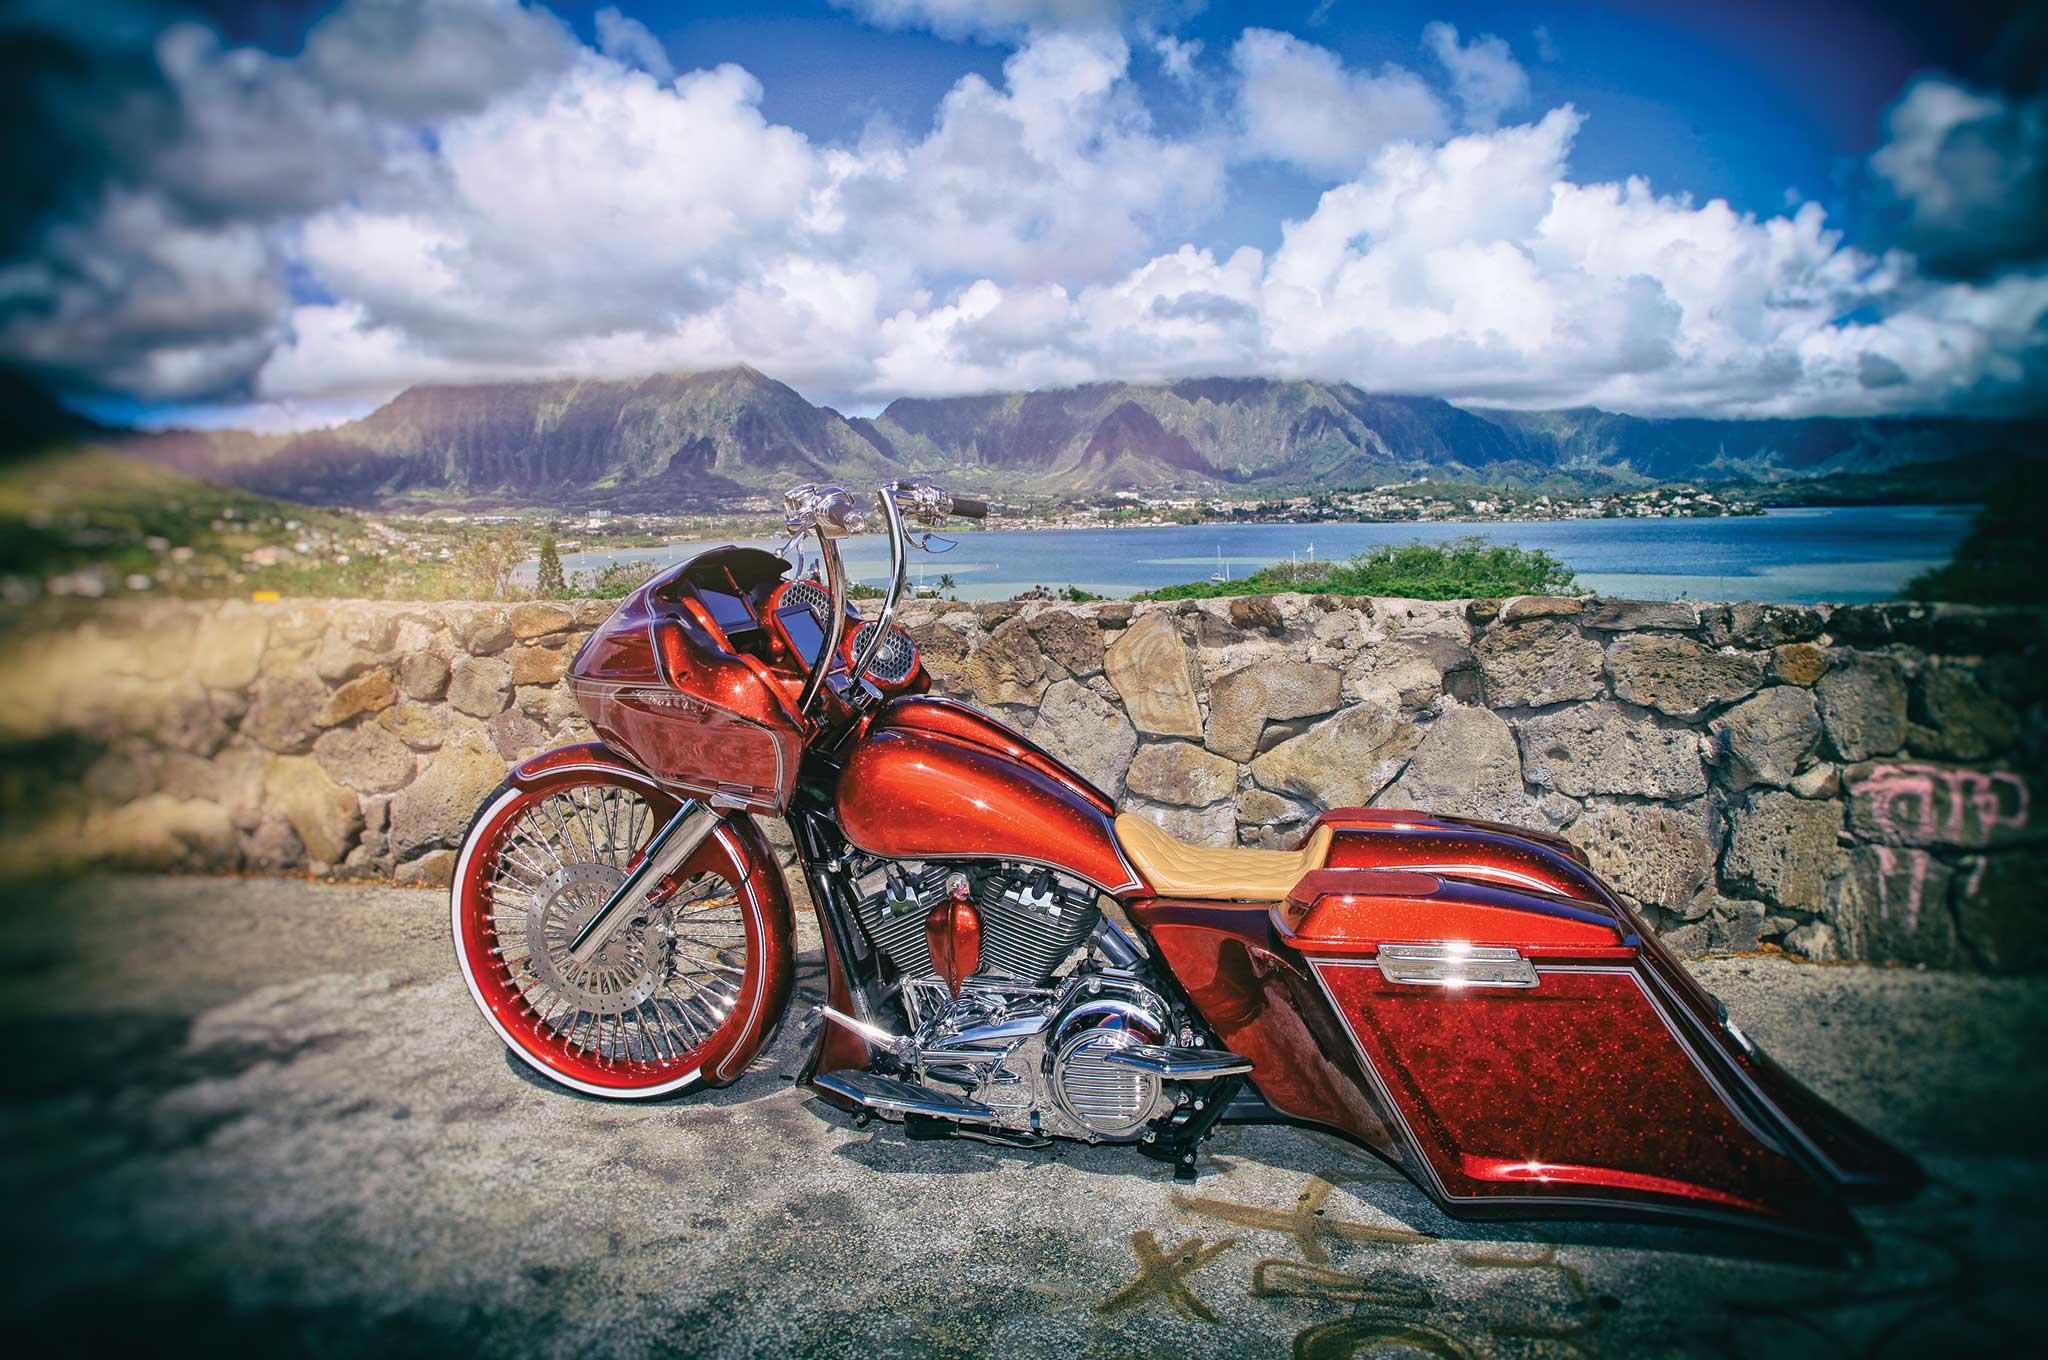 15 Inch Tires >> 2013 Harley-Davidson Road Glide - Gliding in Paradise ...